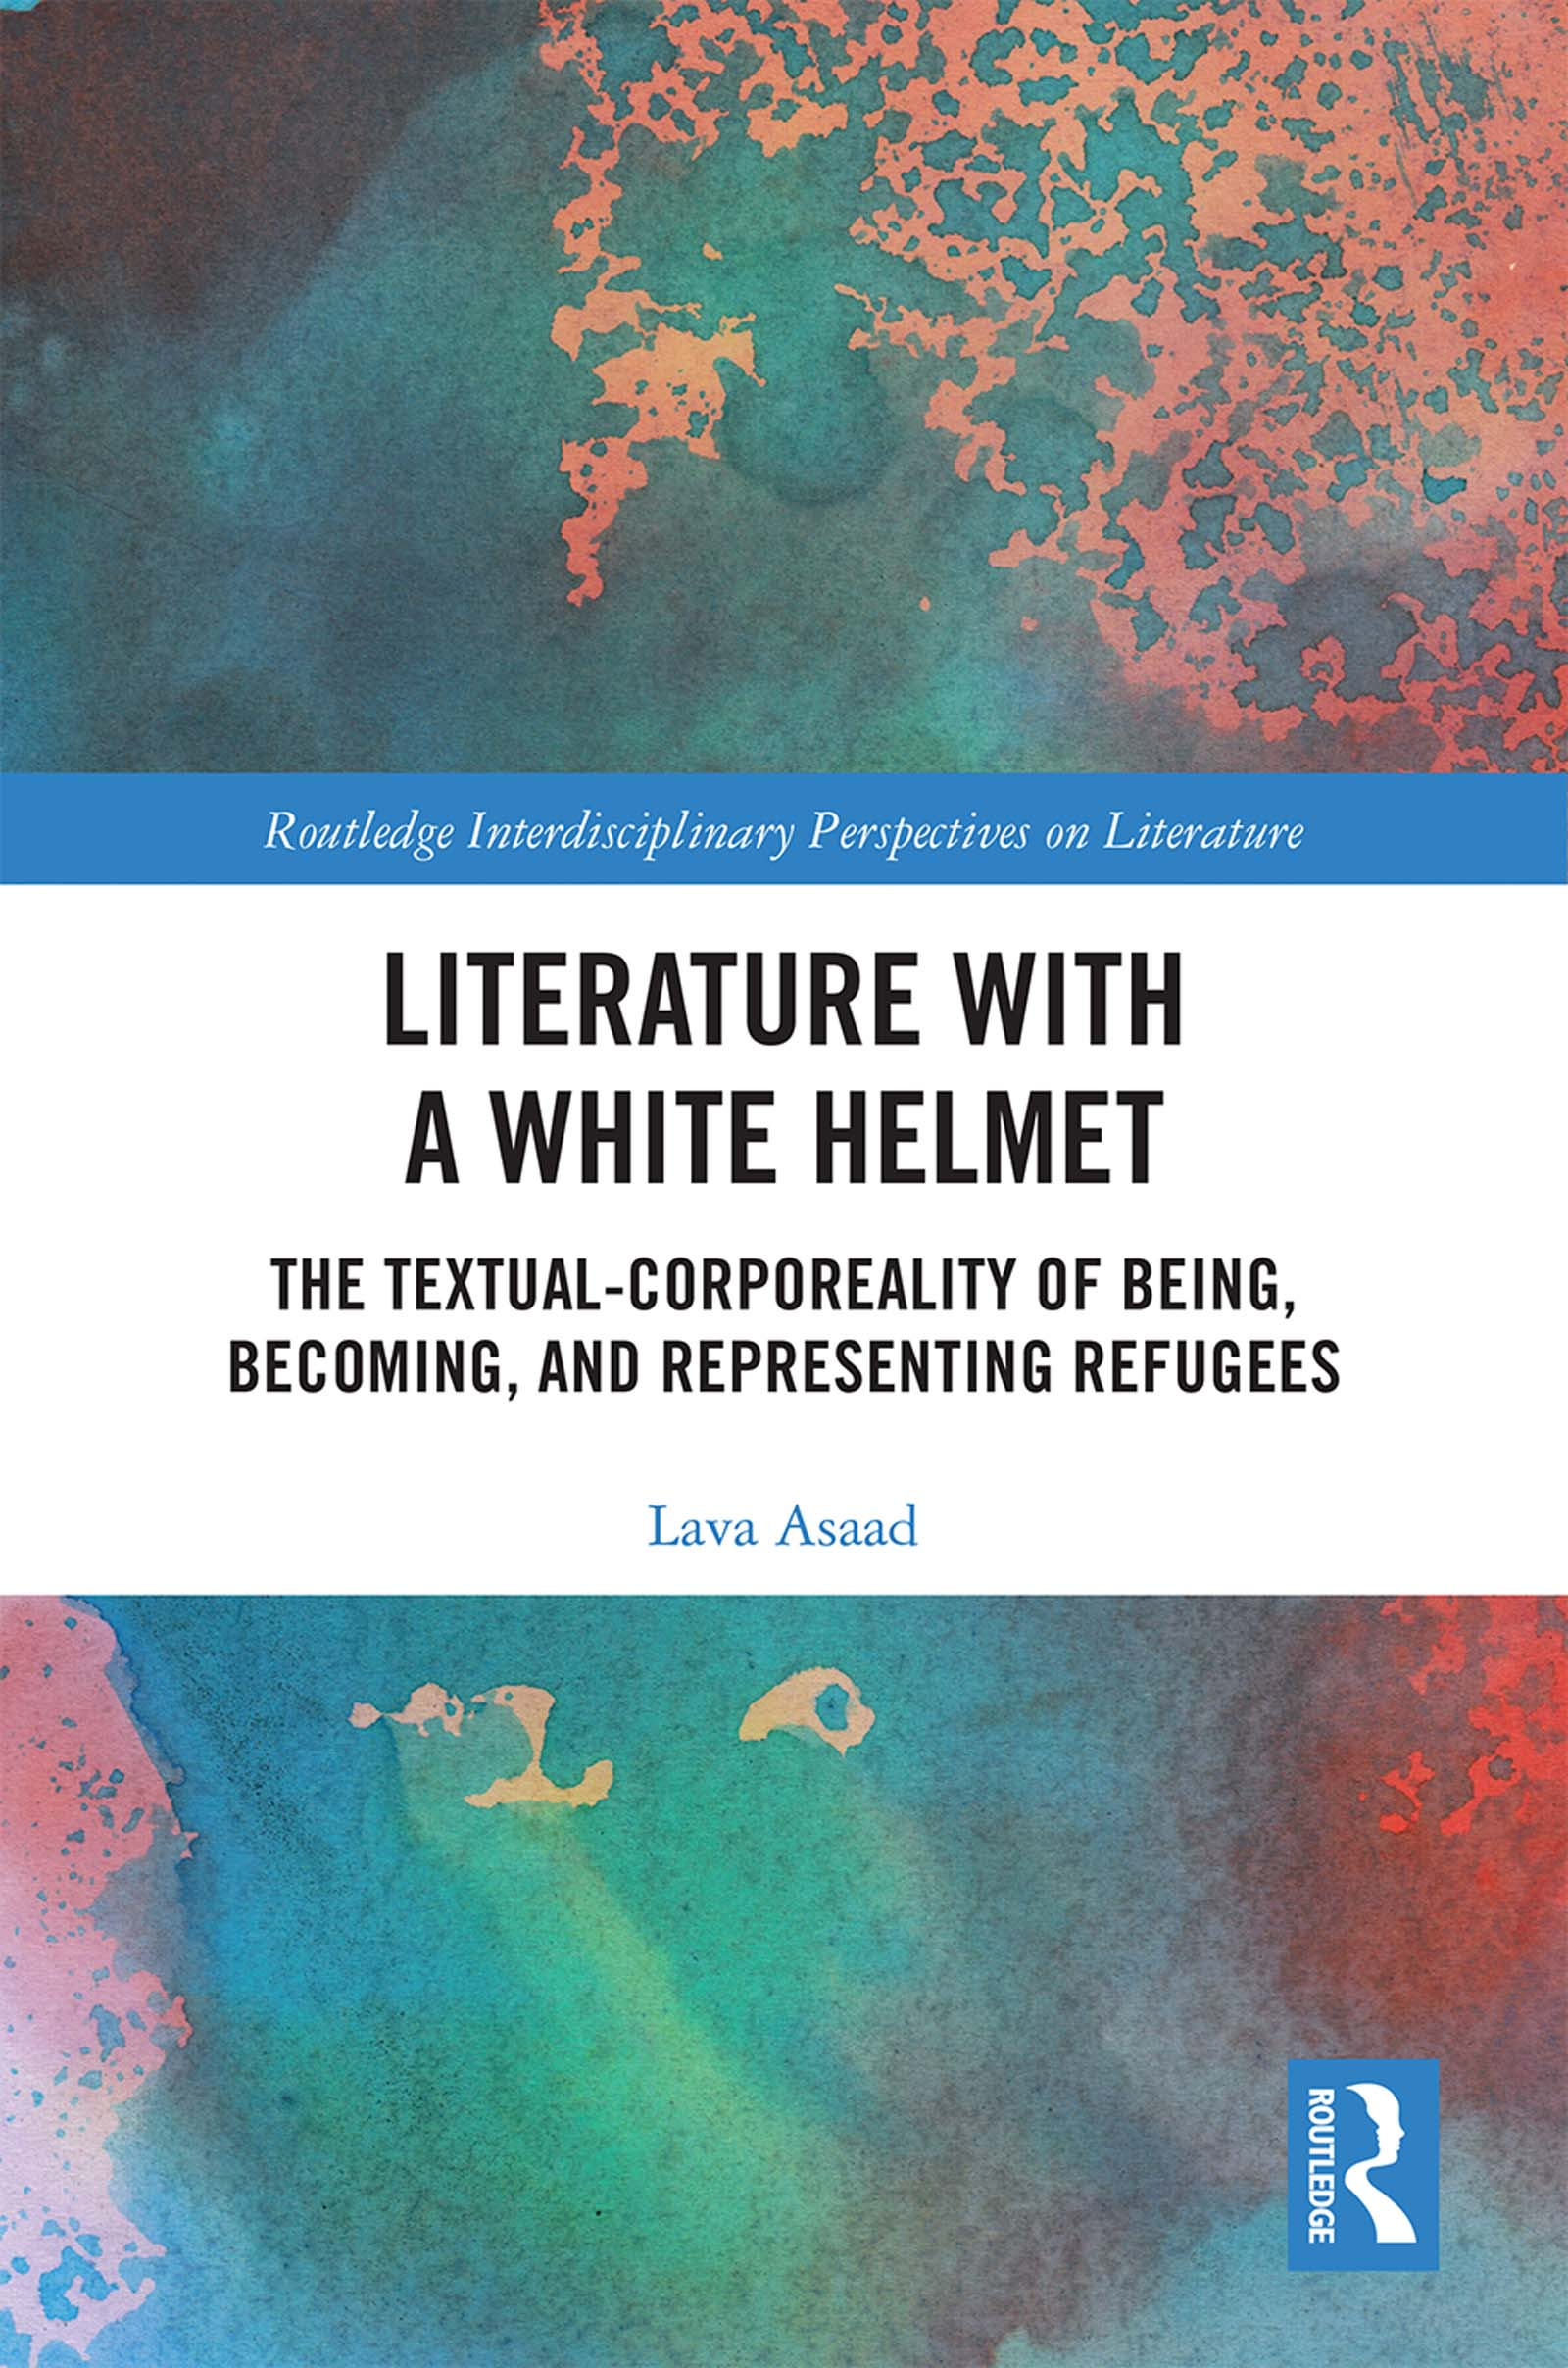 Literature with A White Helmet: The Textual-Corporeality of Being, Becoming, and Representing Refugees book cover